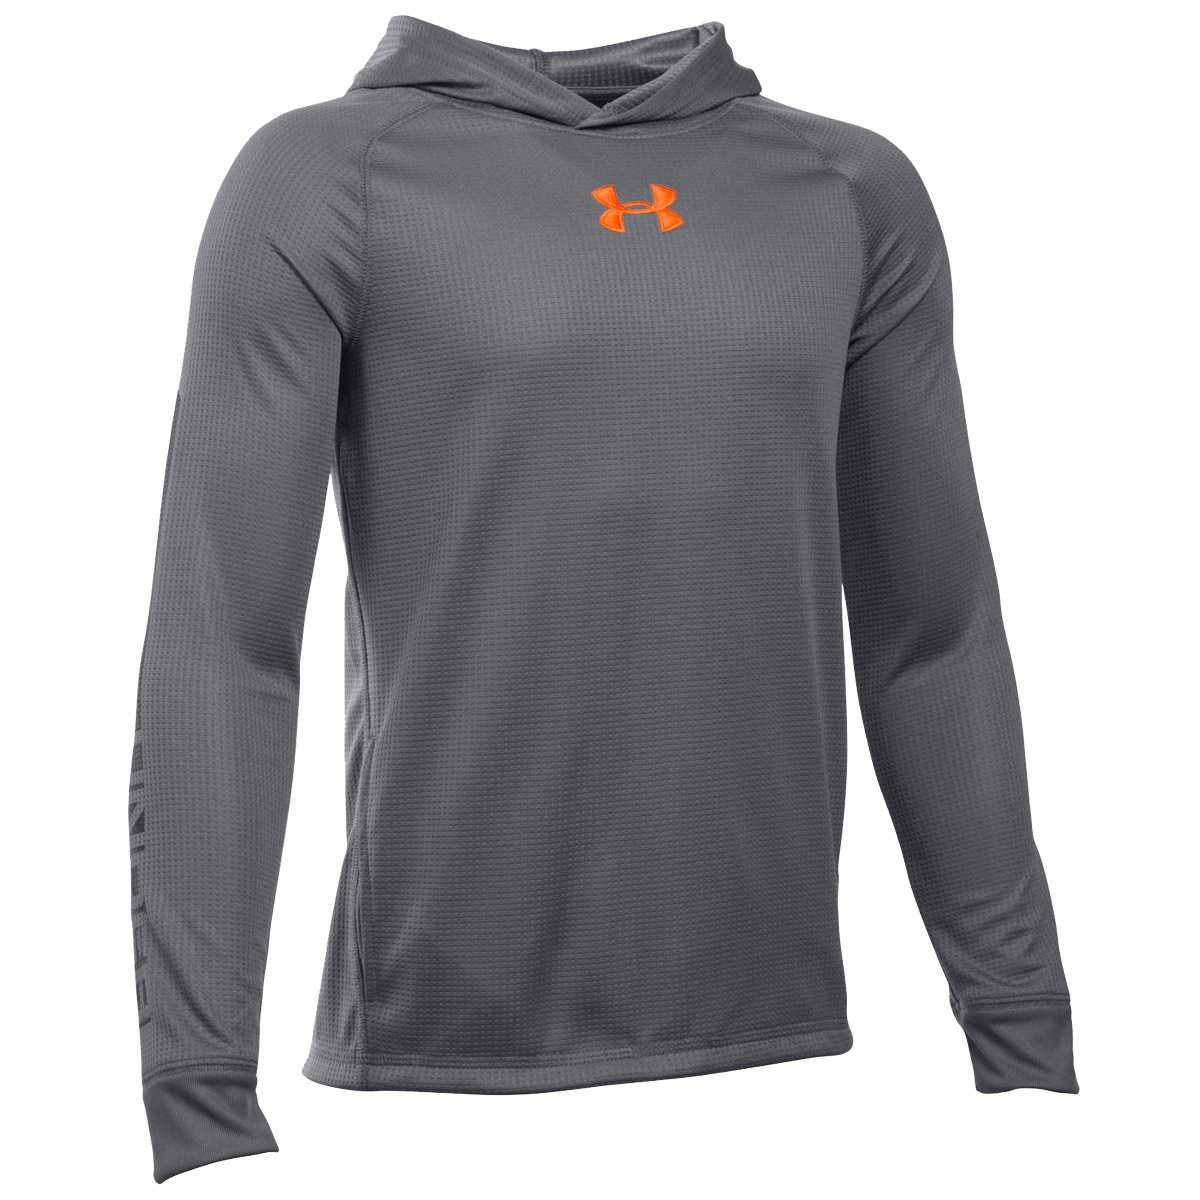 Under armour waffle yth pullover hoody for Under armor hockey shirt